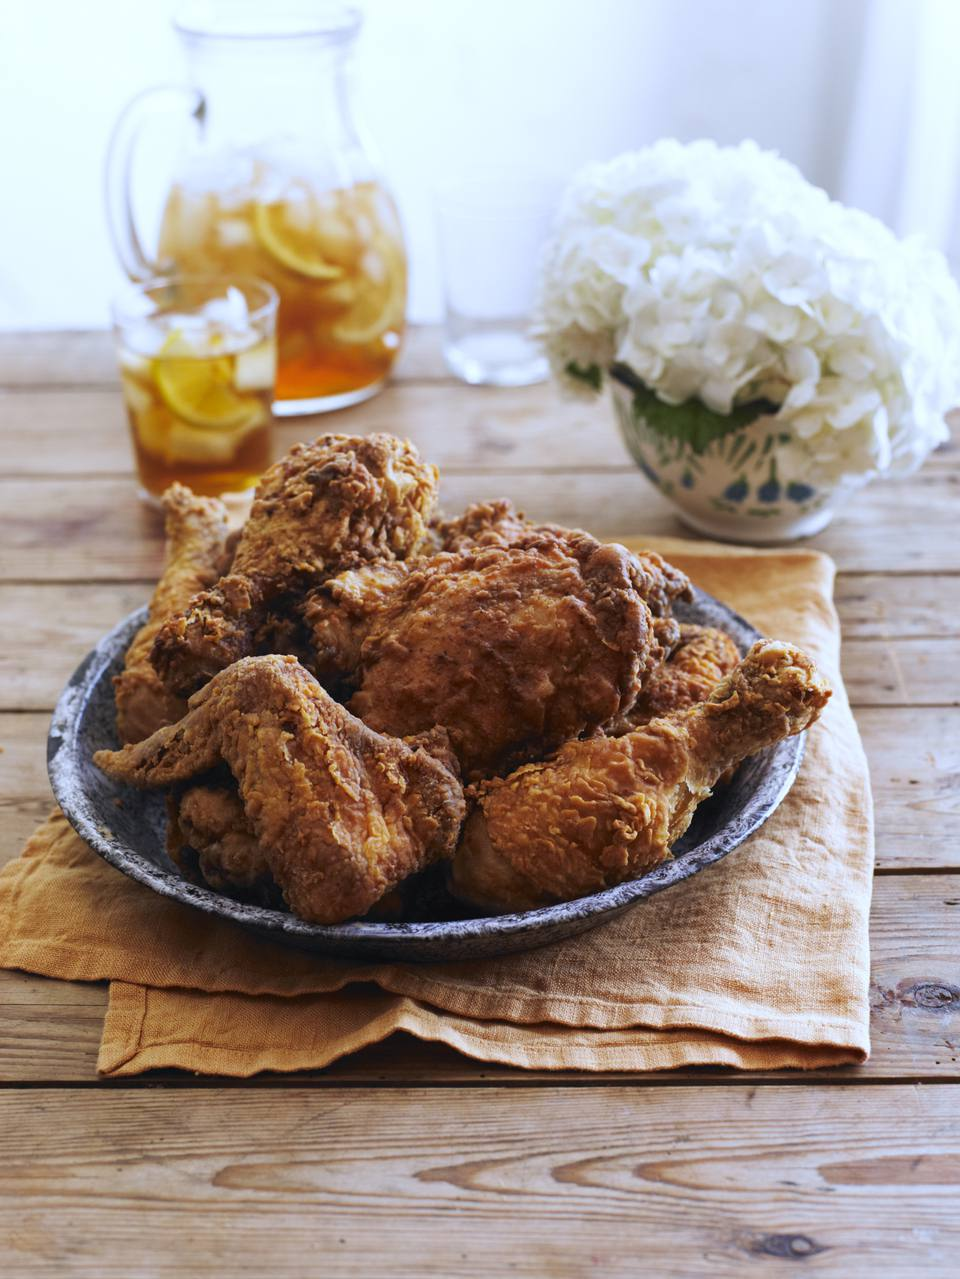 A plate of fried chicken